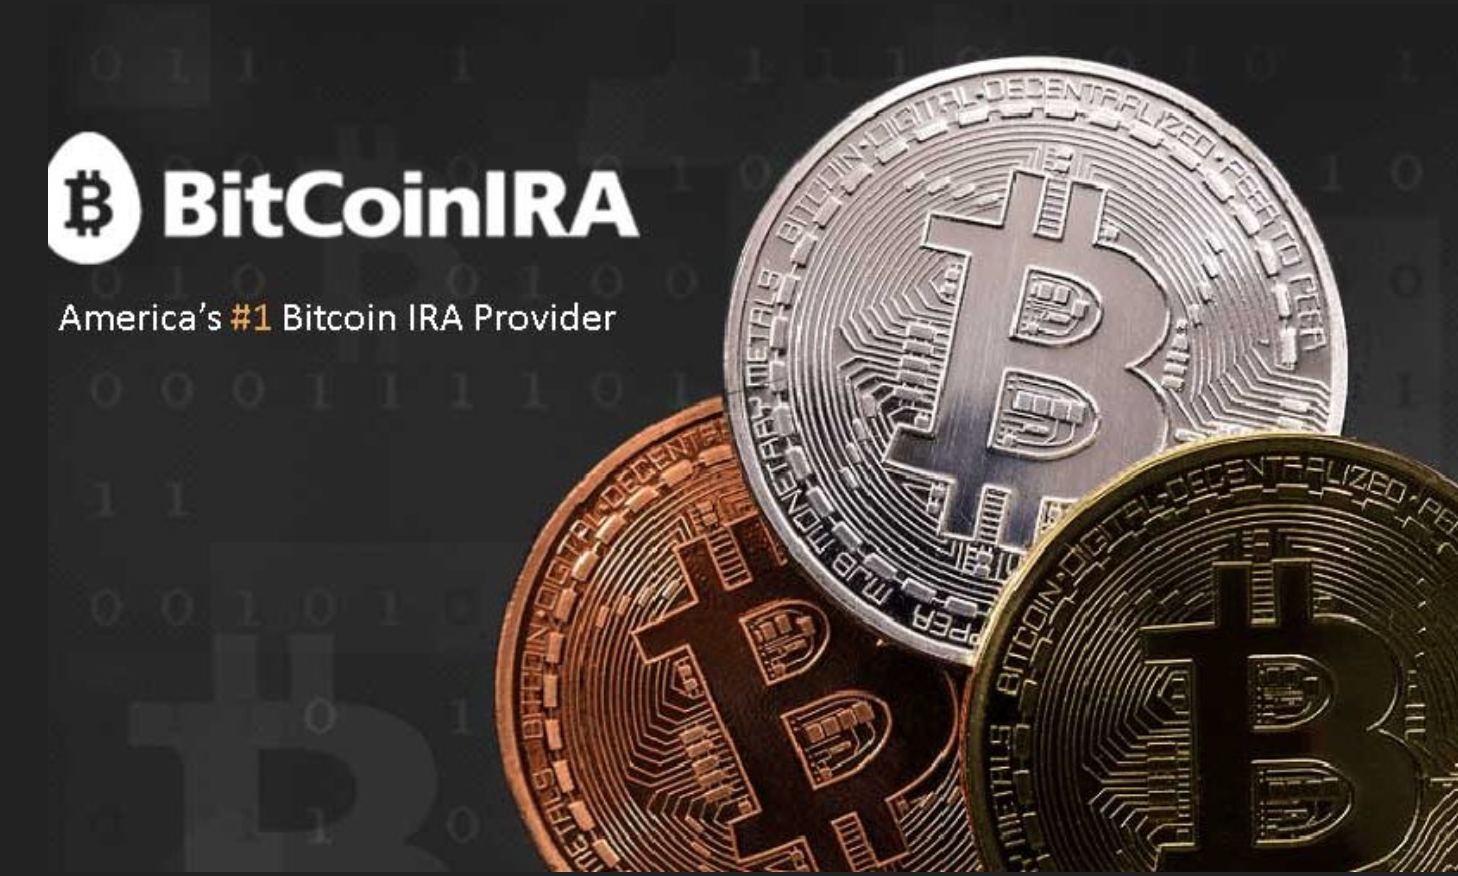 Bitcoin Ira Launches Crypto Retirement Accounts Insured For $100M, Courtesy Of Bitgo (#GotBitcoin?)